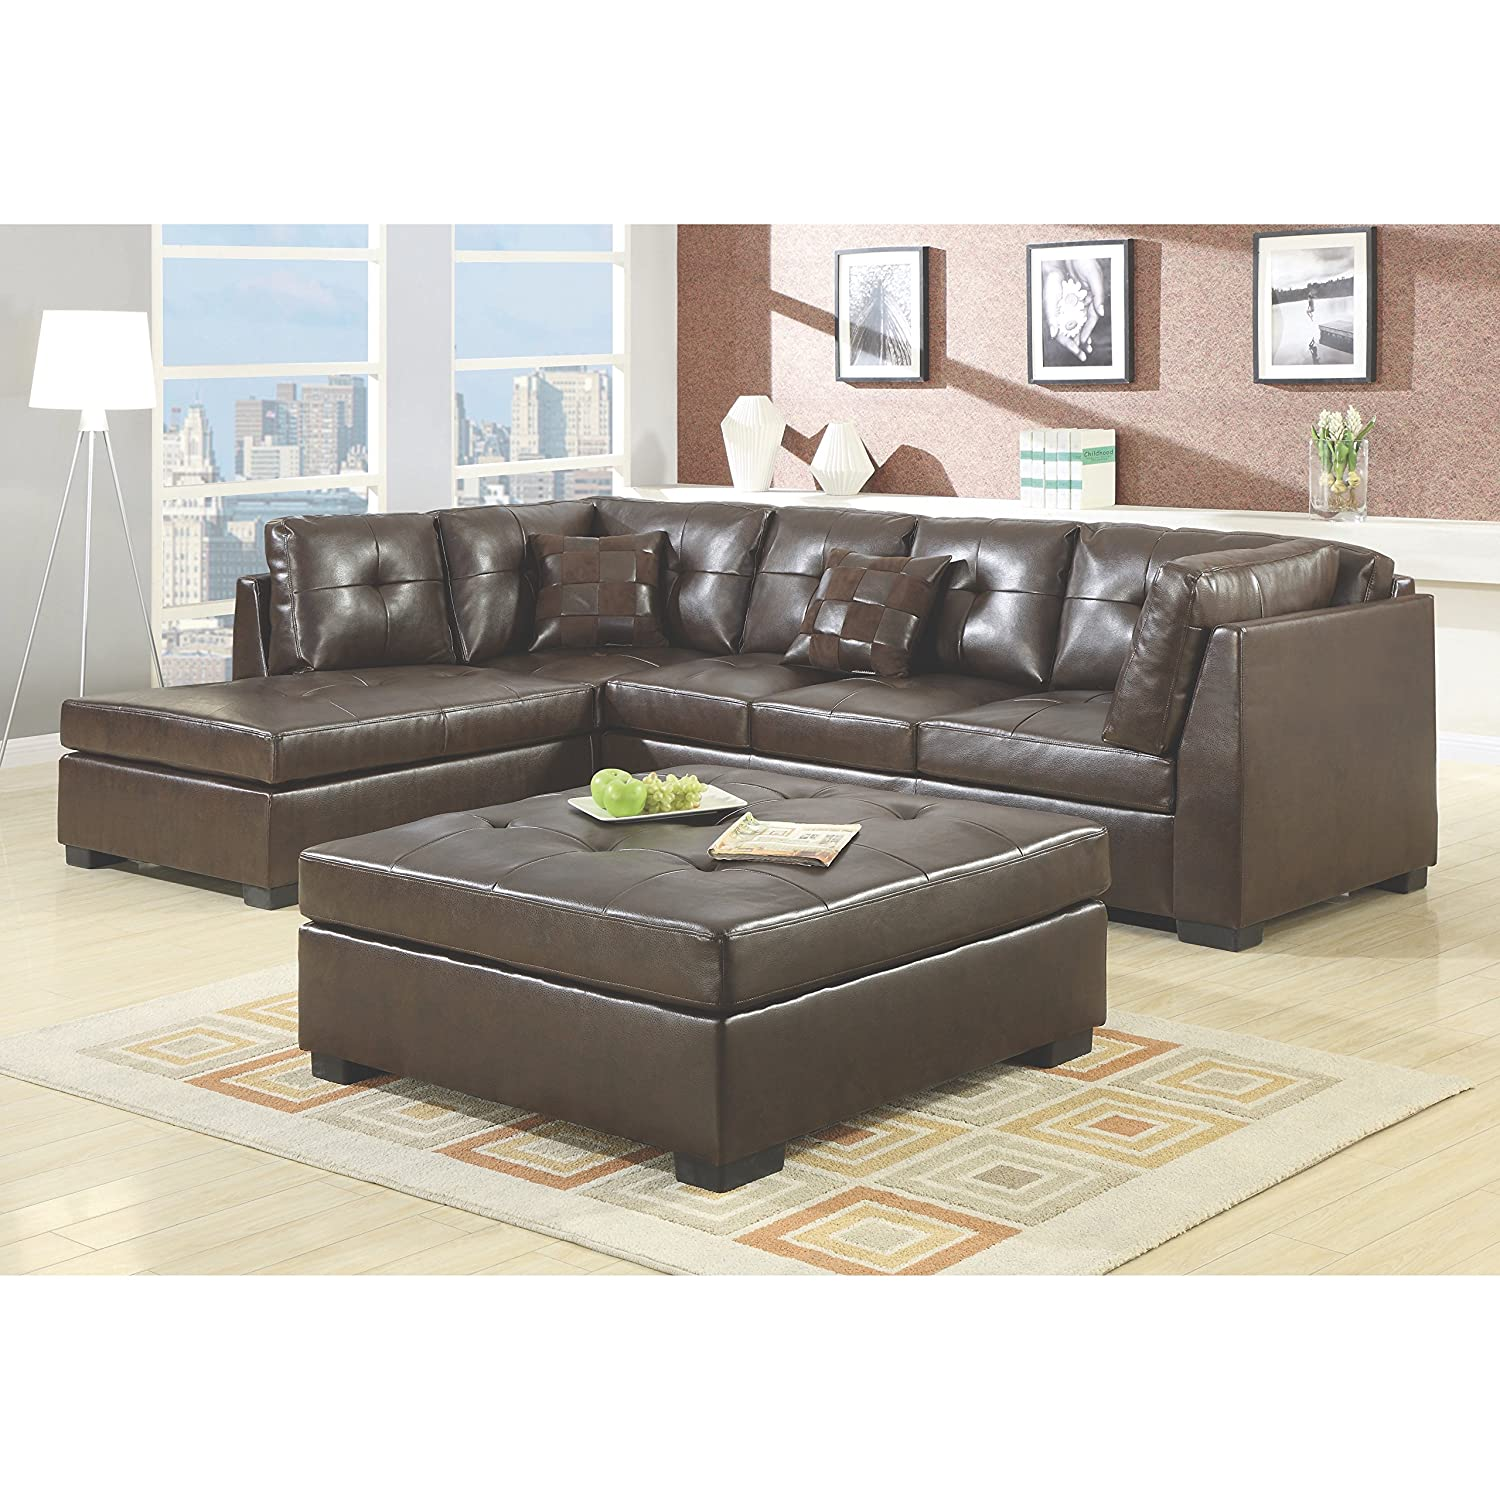 Amazon.com Coaster Home Furnishings 500686 Casual Sectional Sofa Brown Kitchen u0026 Dining  sc 1 st  Amazon.com : coaster leather sectional - Sectionals, Sofas & Couches